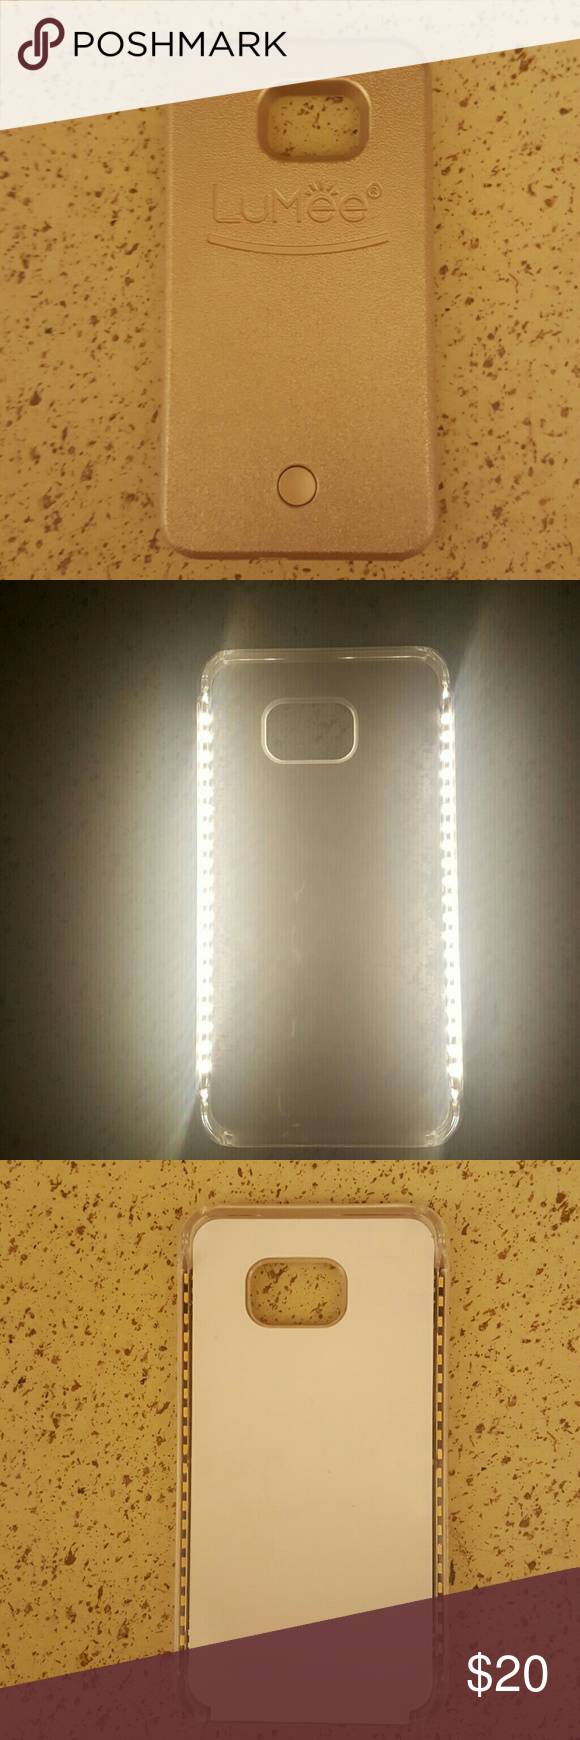 reputable site e5a1f b281b Samsung Note 5 - LuMee Brand New selfie light case with styles and ...